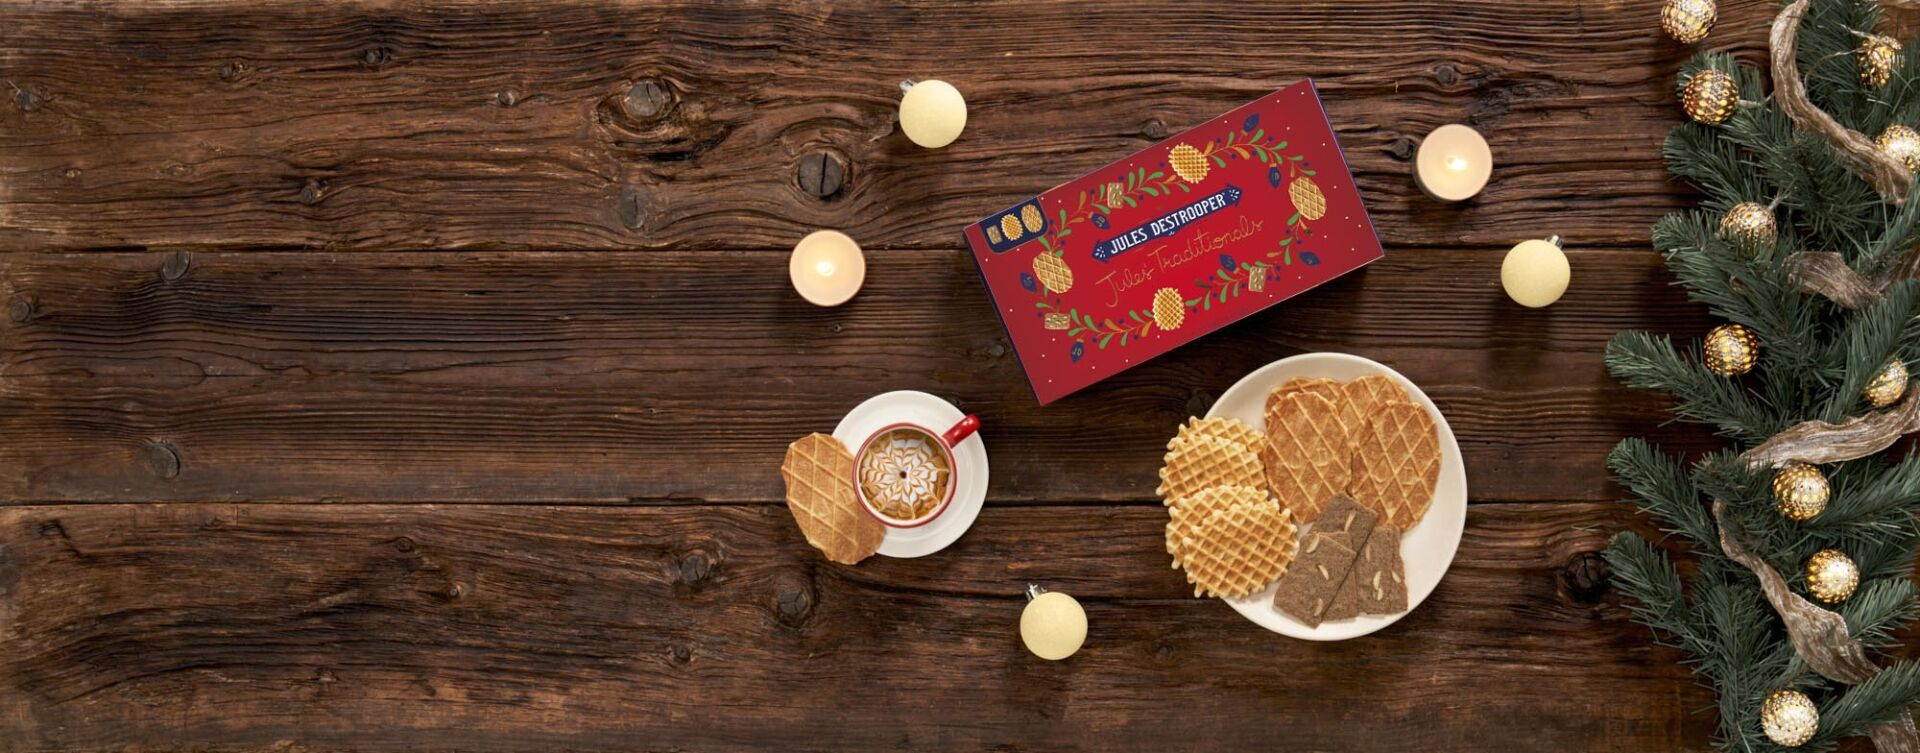 Wooden background red box biscuits